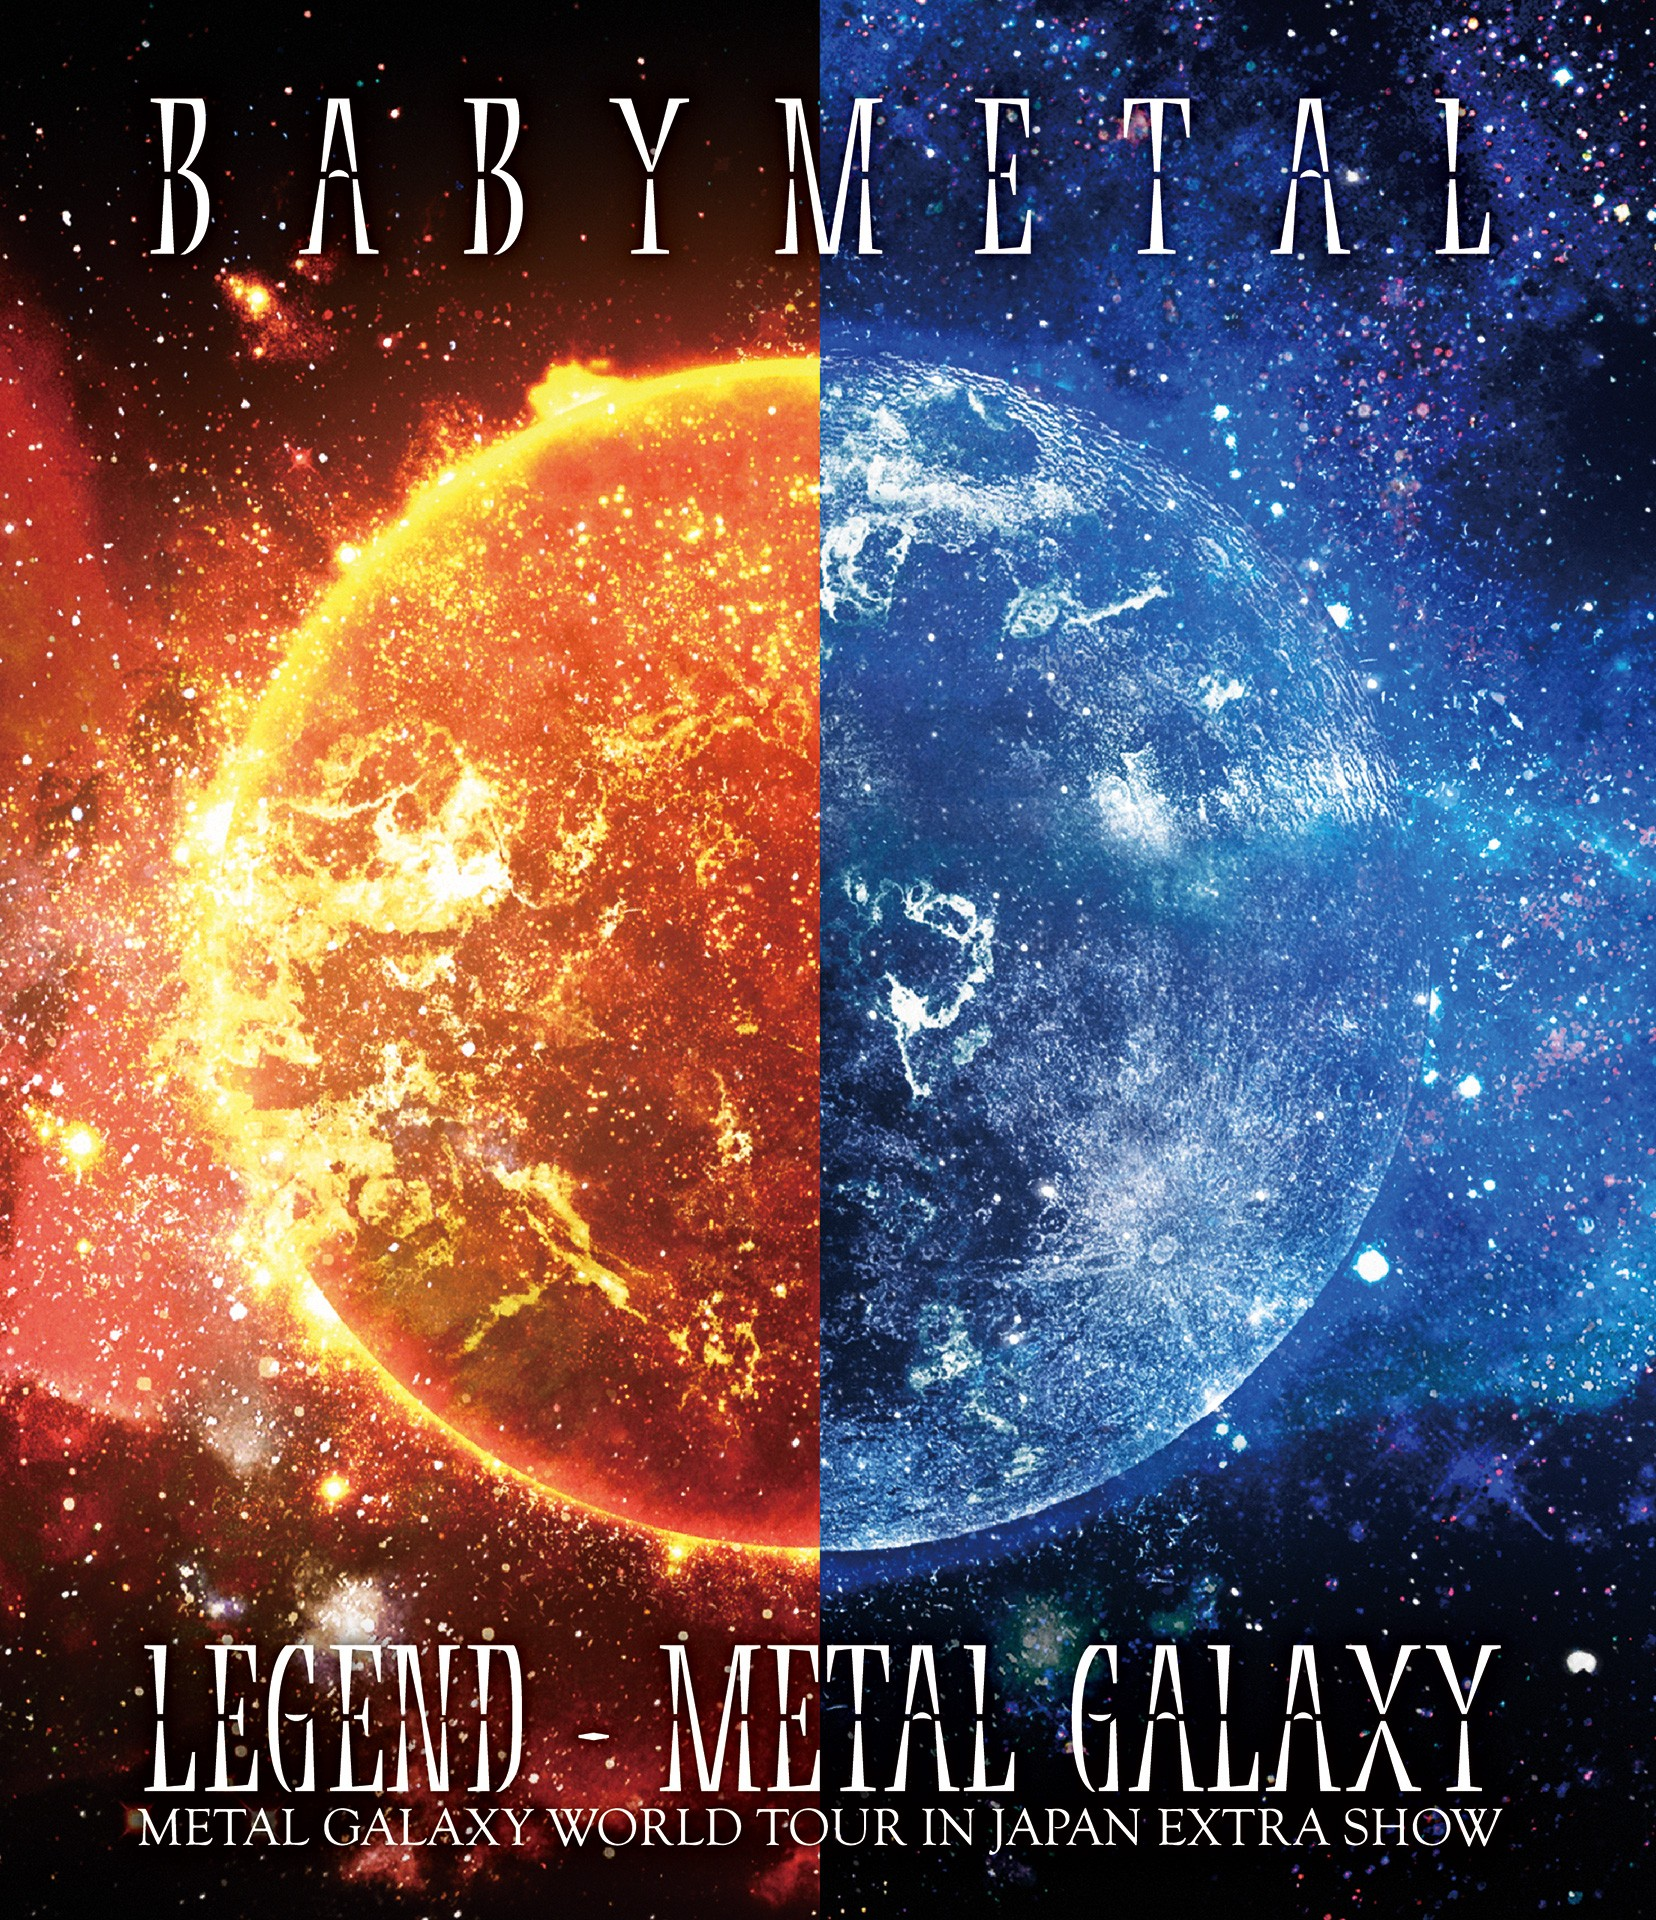 BABYMETAL – Legend – Metal Galaxy (Metal Galaxy World Tour In Japan Extra Show) [Blu-ray ISO + MKV 1080p] [2020.09.09]